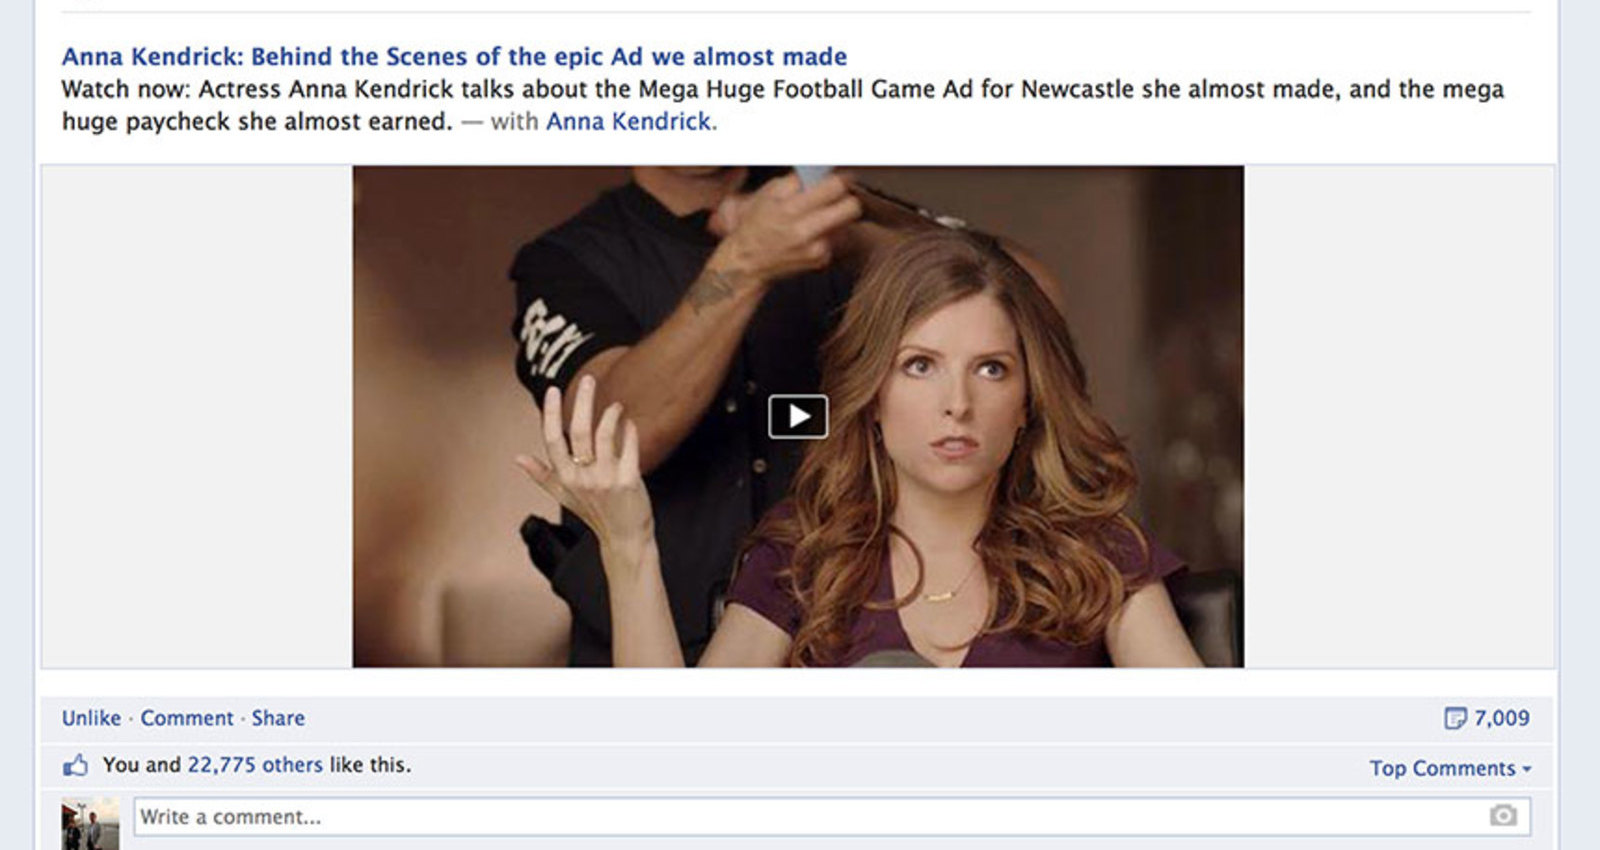 If We Made It - Anna Kendrick: Behind the Scenes of the Mega Huge Footbal Ad We Almost Made